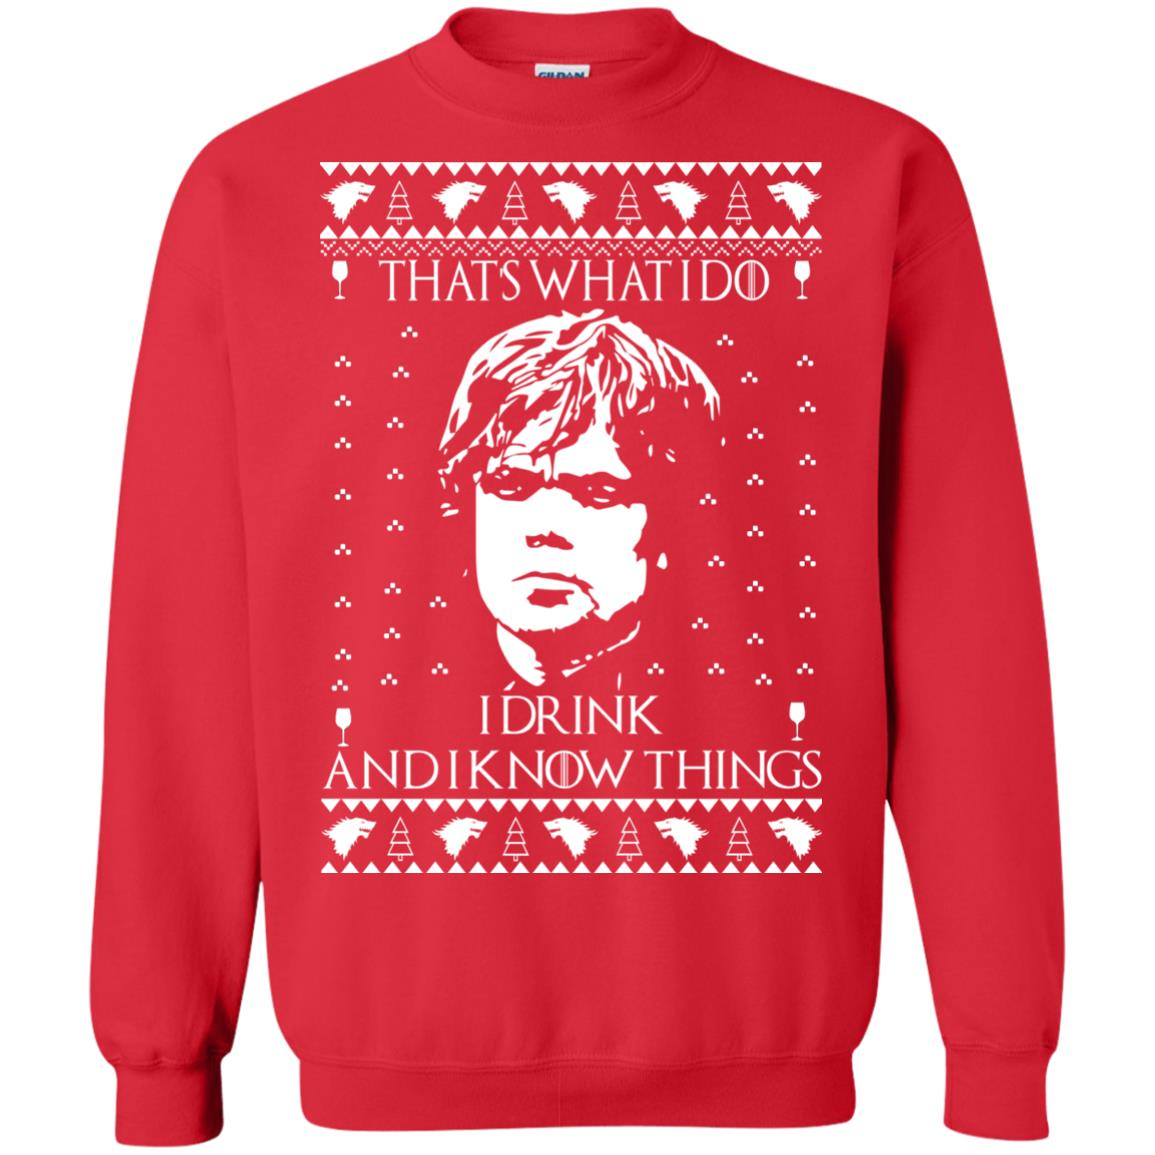 image 3009 - Tyrion Lannister I Drink and I Know Things Ugly Christmas Sweater, Shirt